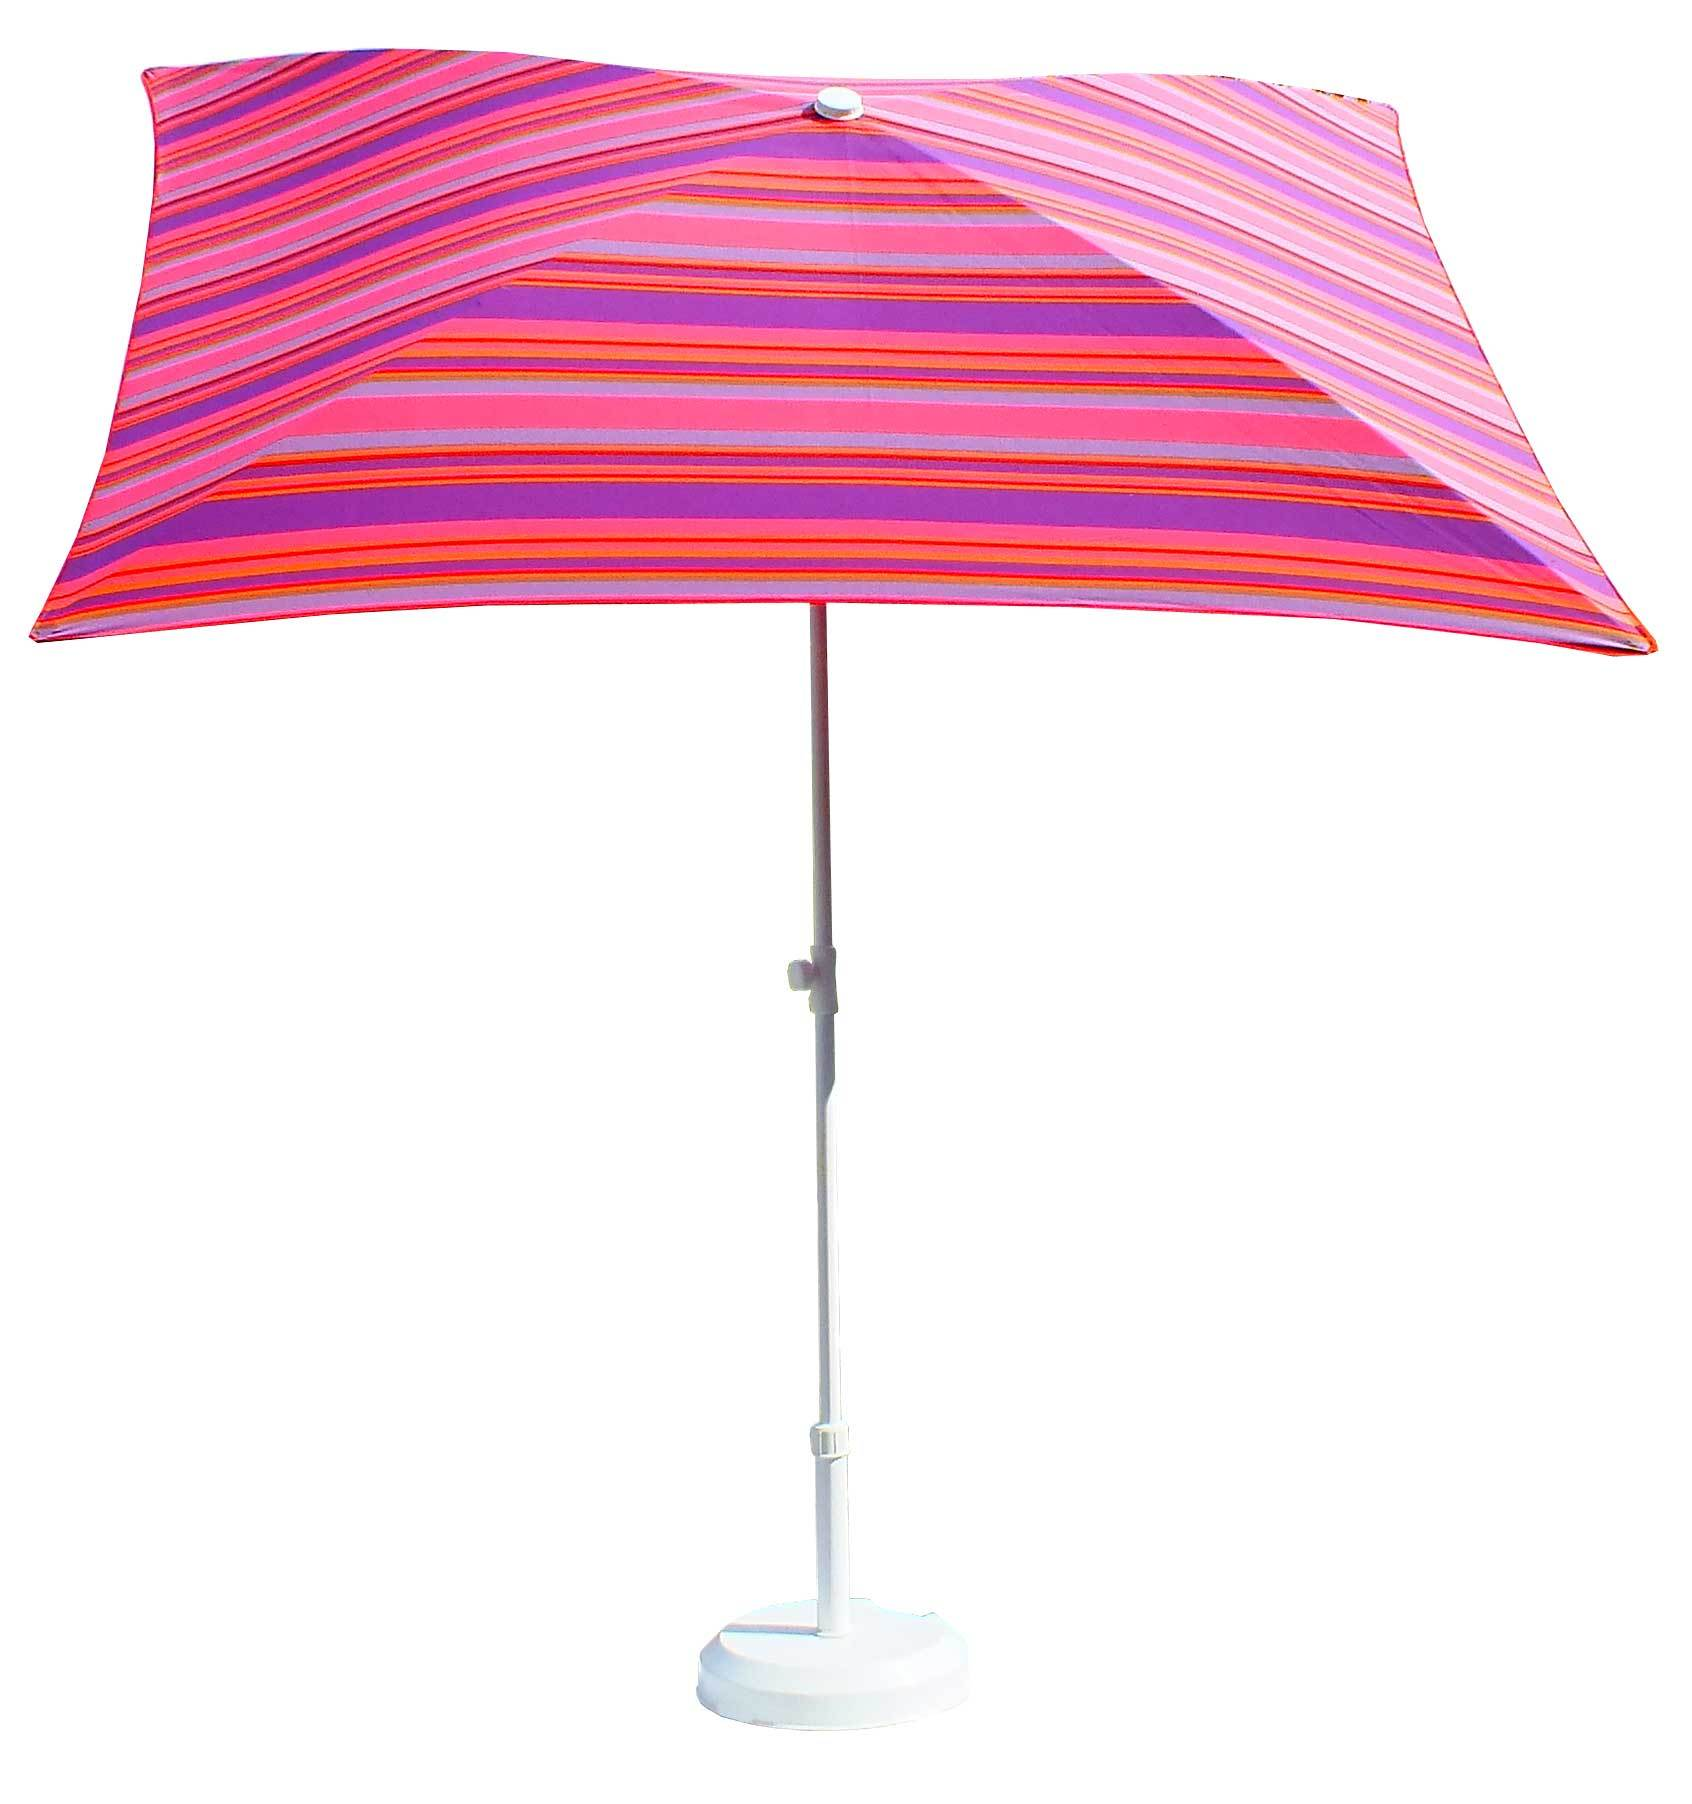 Store Terrasse Castorama Parasol Rectangulaire Inclinable